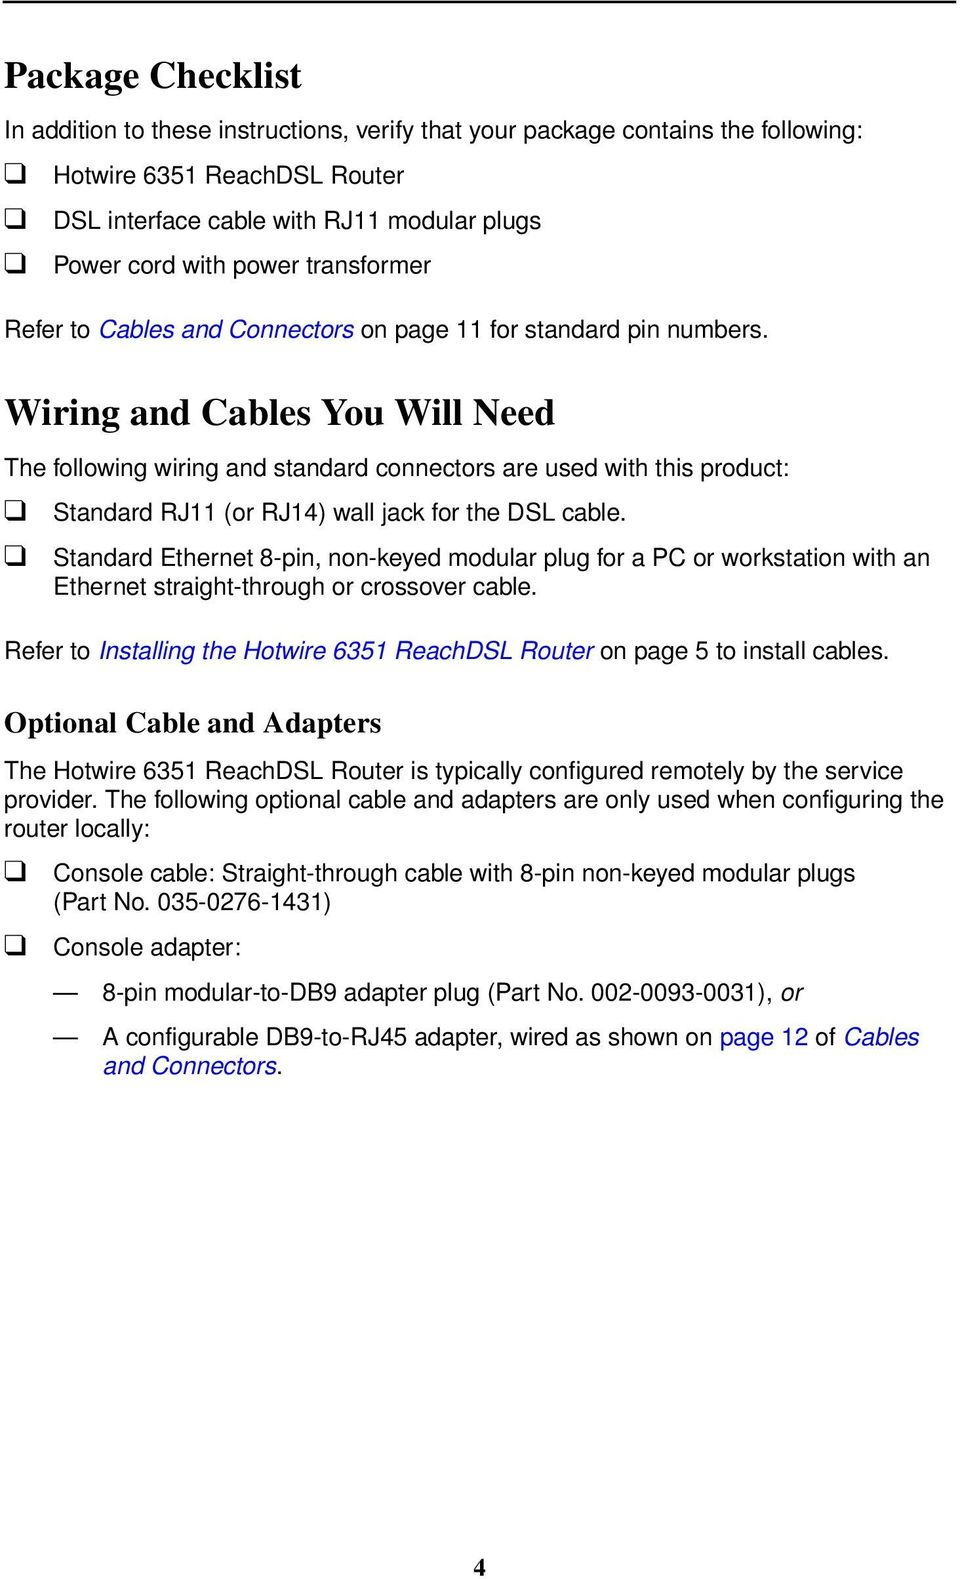 Hotwire 6351 Reachdsl Router Overview Pdf Cable Diagram In Addition Phone Ether Wall Jack Wiring On Cat5e And Cables You Will Need The Following Standard Connectors Are Used With This